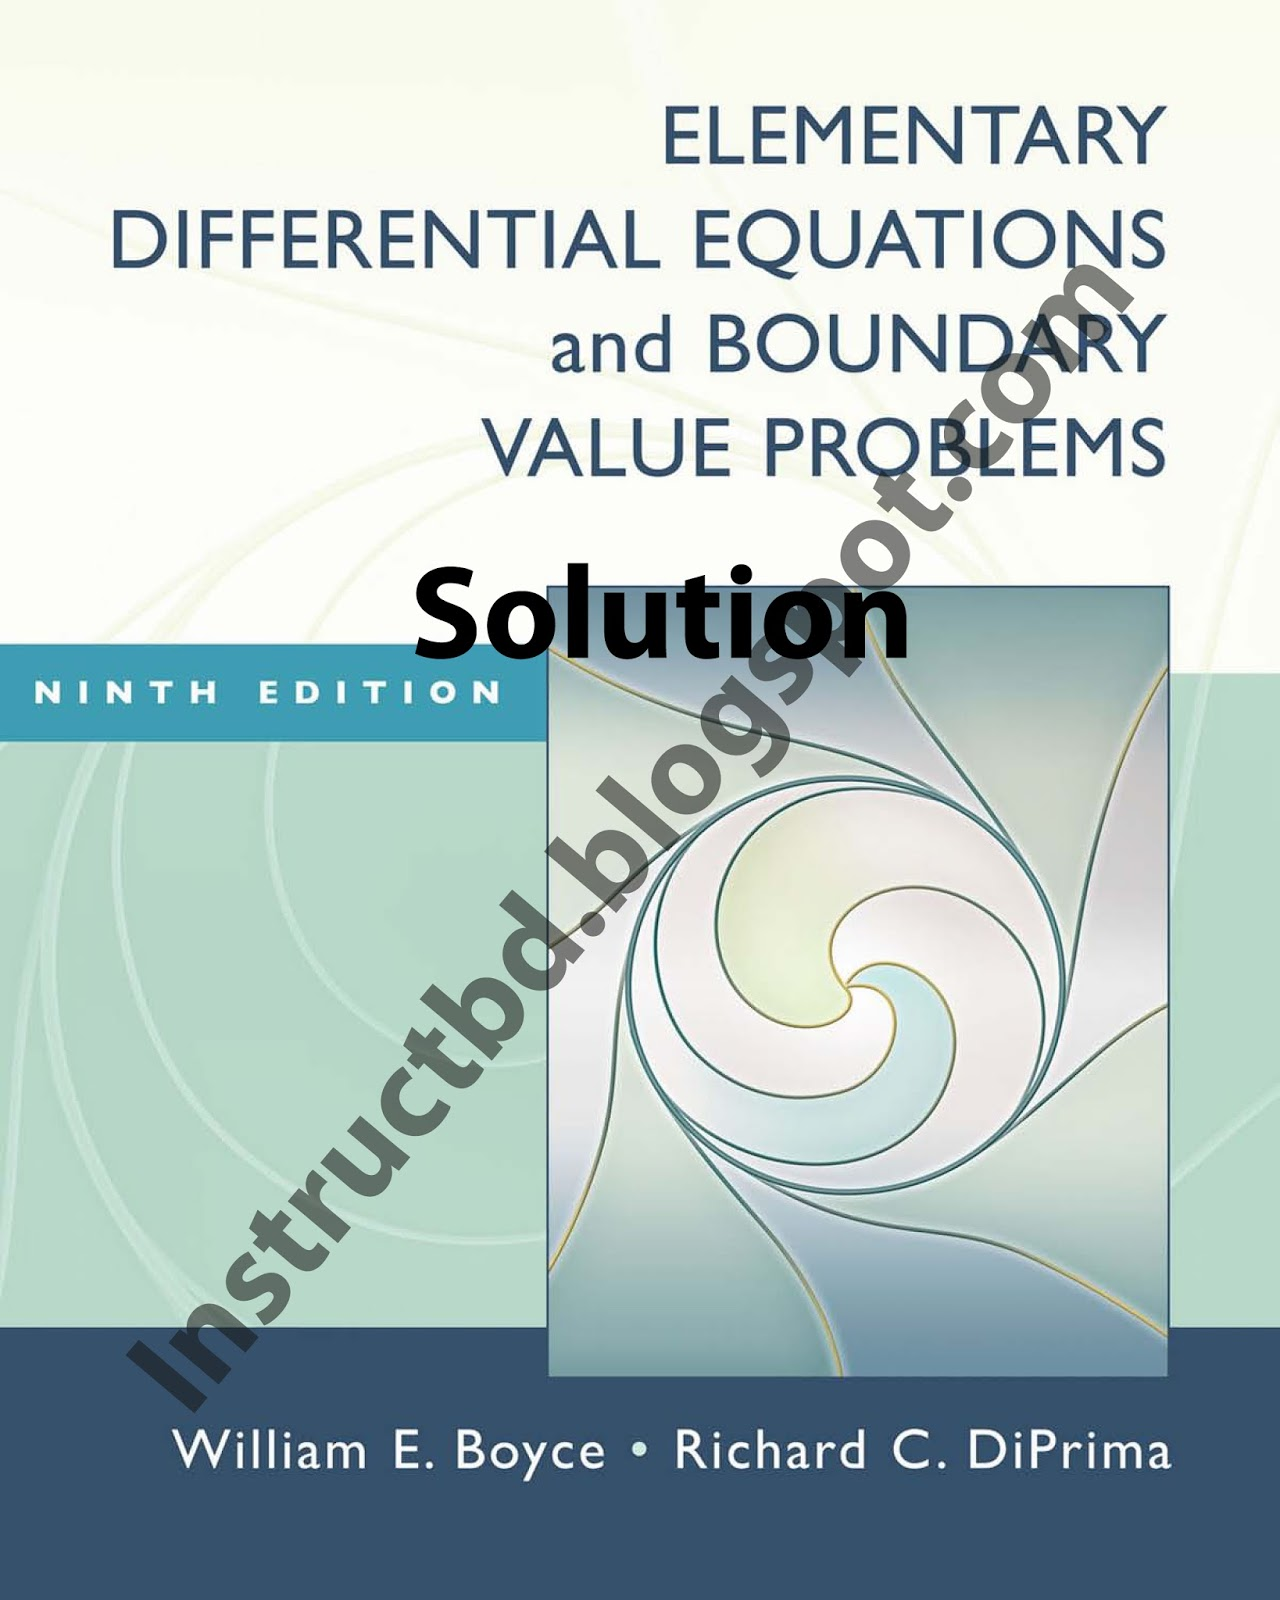 [Solution] Elementary Differential Equations and Boundary Value Problems by  Boyce & Diprima - 9th Edition